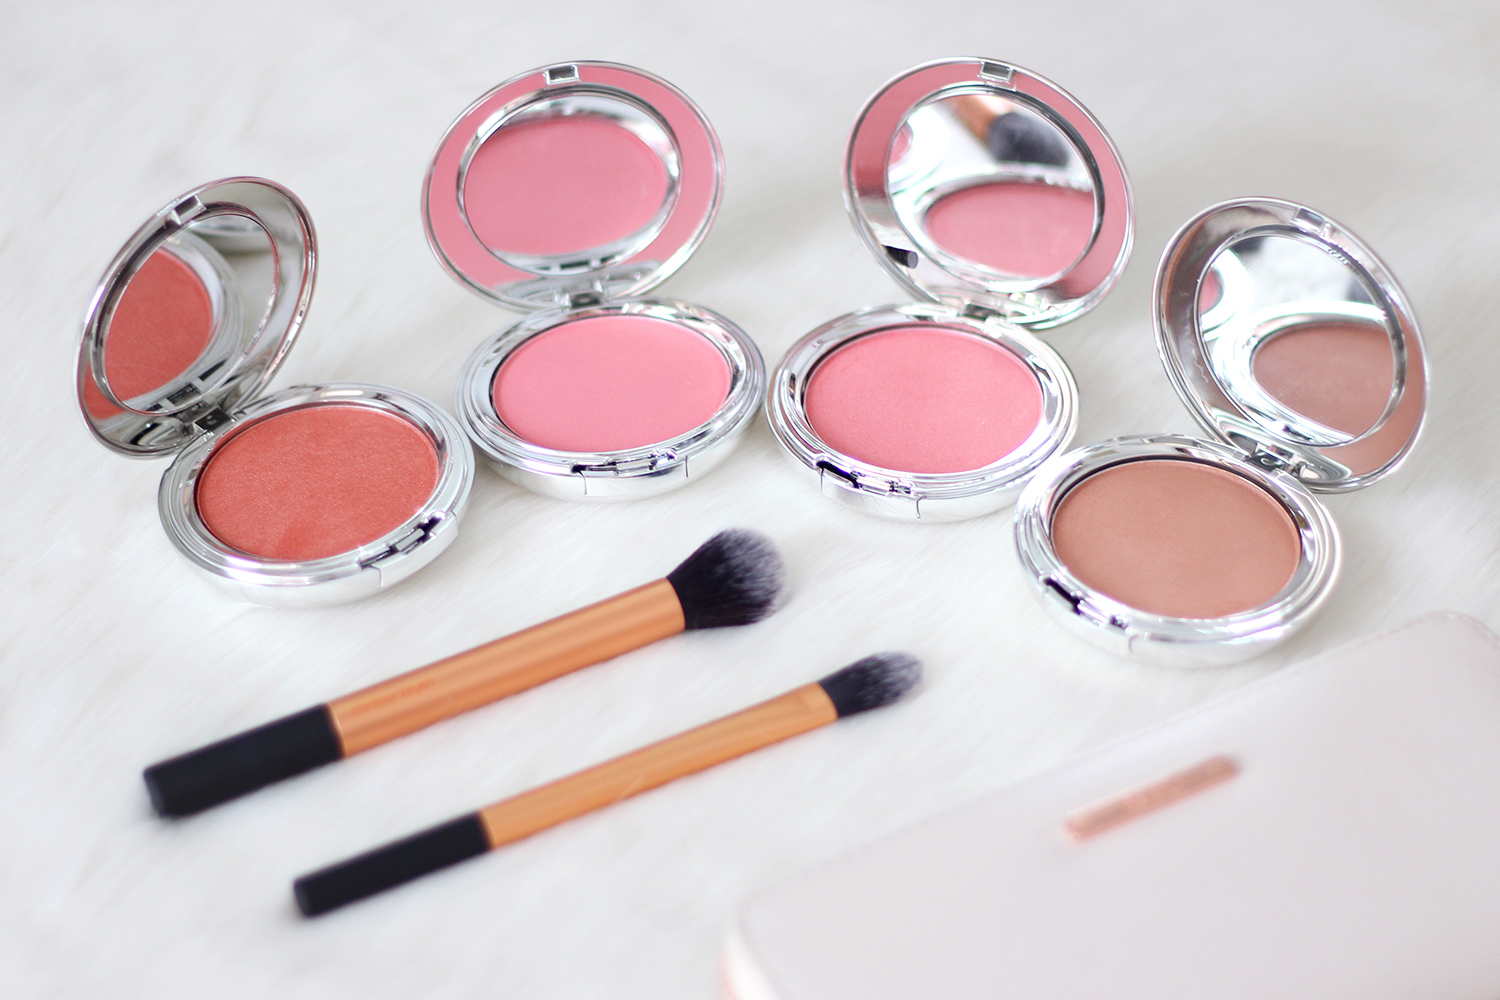 Ultima Ii Makeup Indonesia Saubhaya Delicate Translucent Face Powder 24g I M Usually Stick To The Same Pink Color For Blushes Therefore Am So Excited Explore On